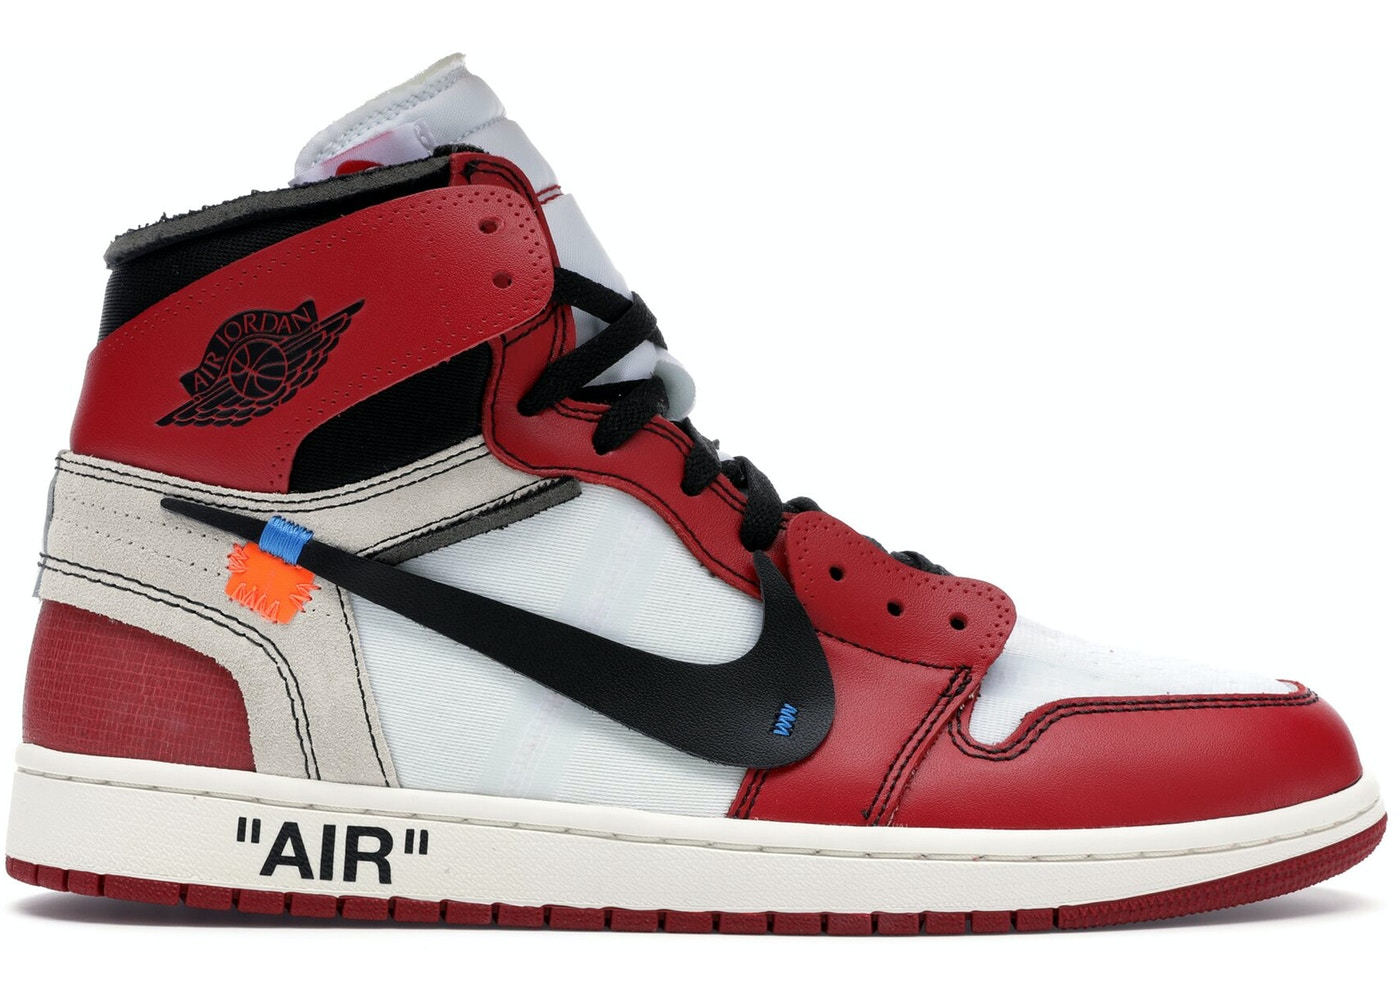 05636b1c1716 Jordan 1 Retro High Off-White Chicago - AA3834-101